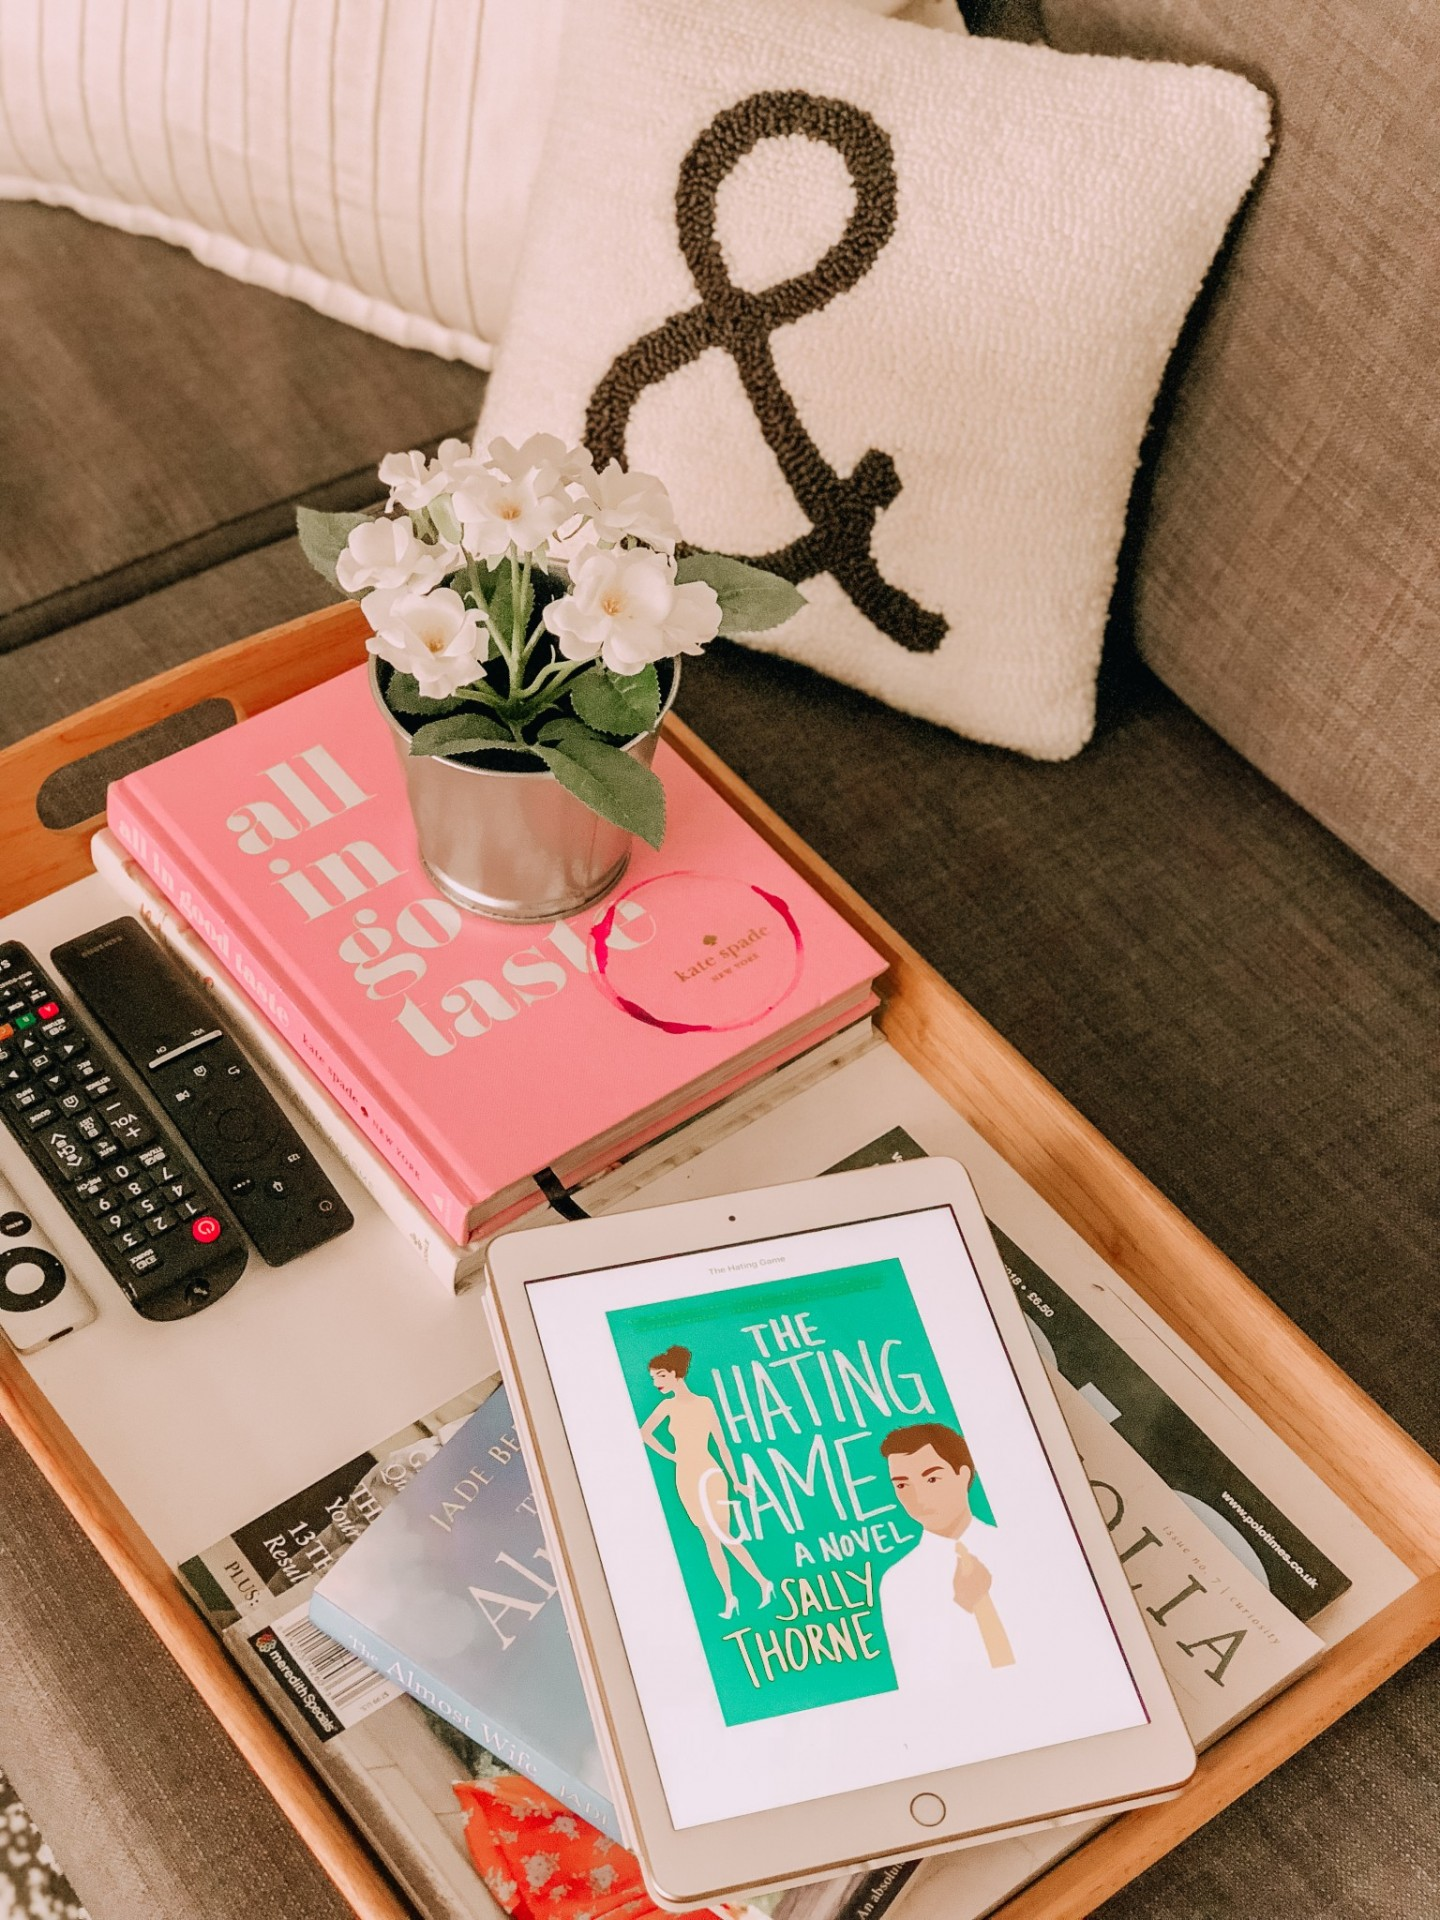 Books I'm Loving: Favorite Books read this Summer and book review featured by popular London life and style blogger Mollie Moore